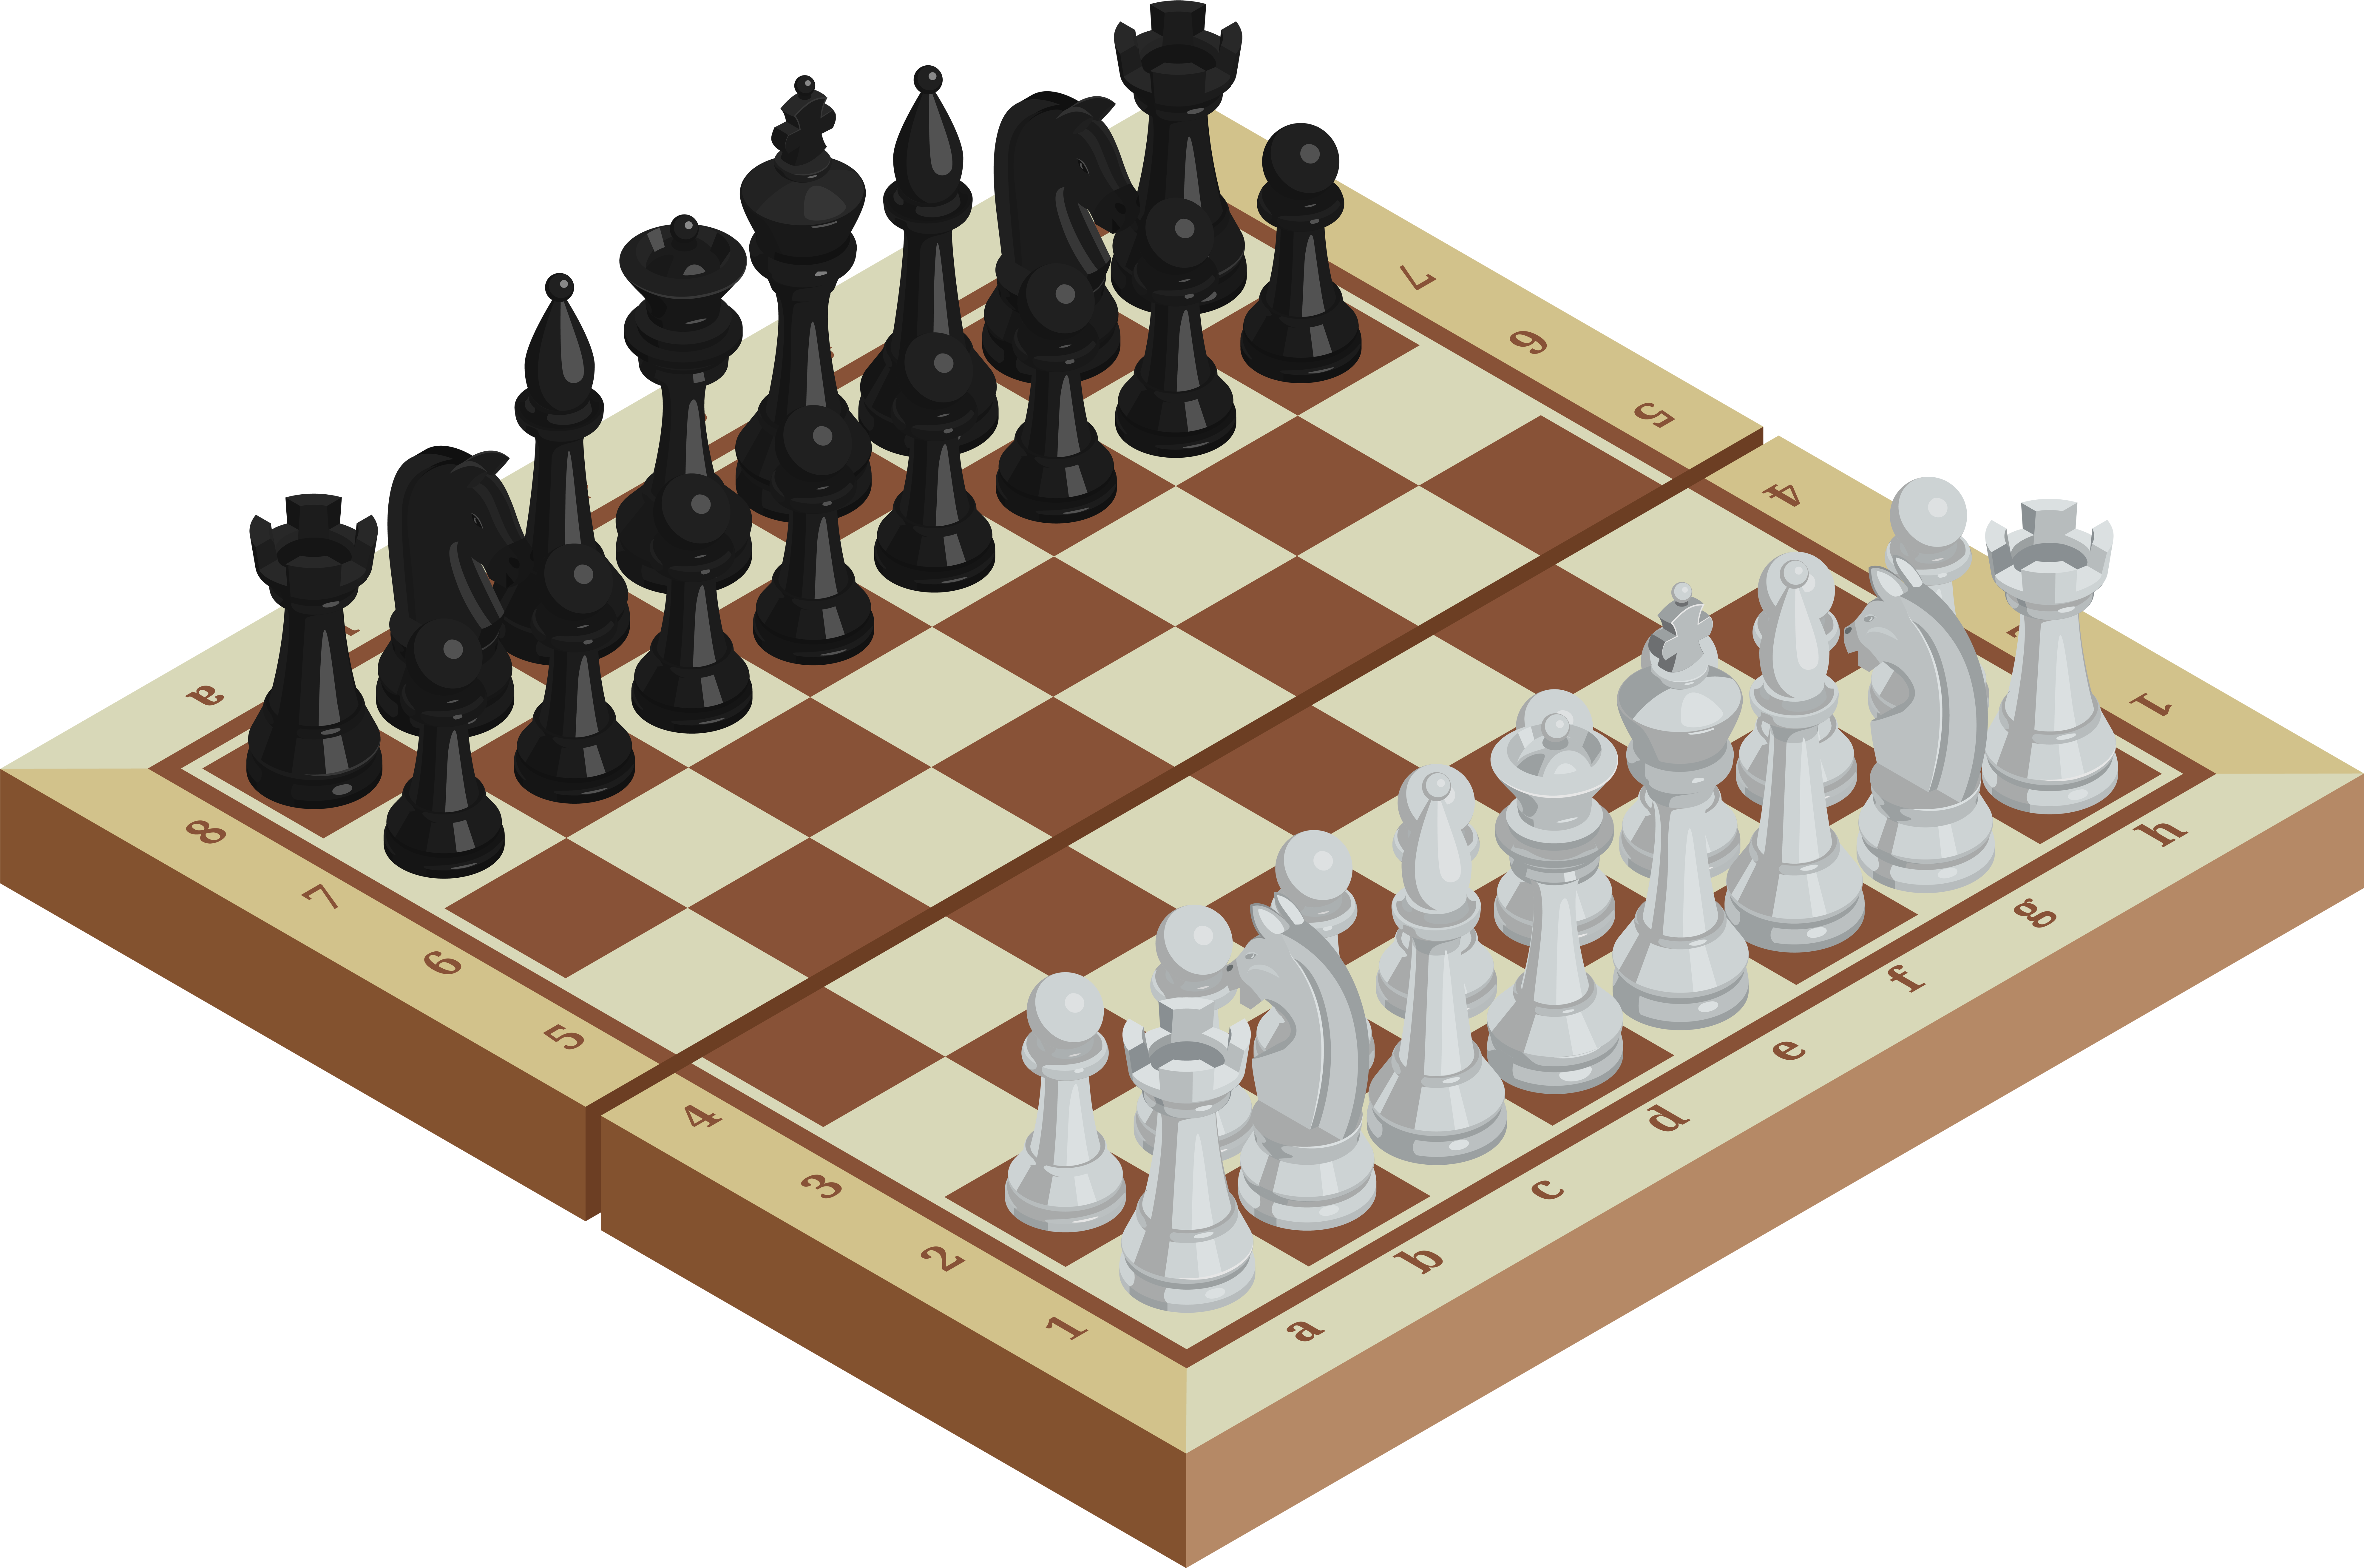 Hd chessboard png clip. Chess clipart chess board